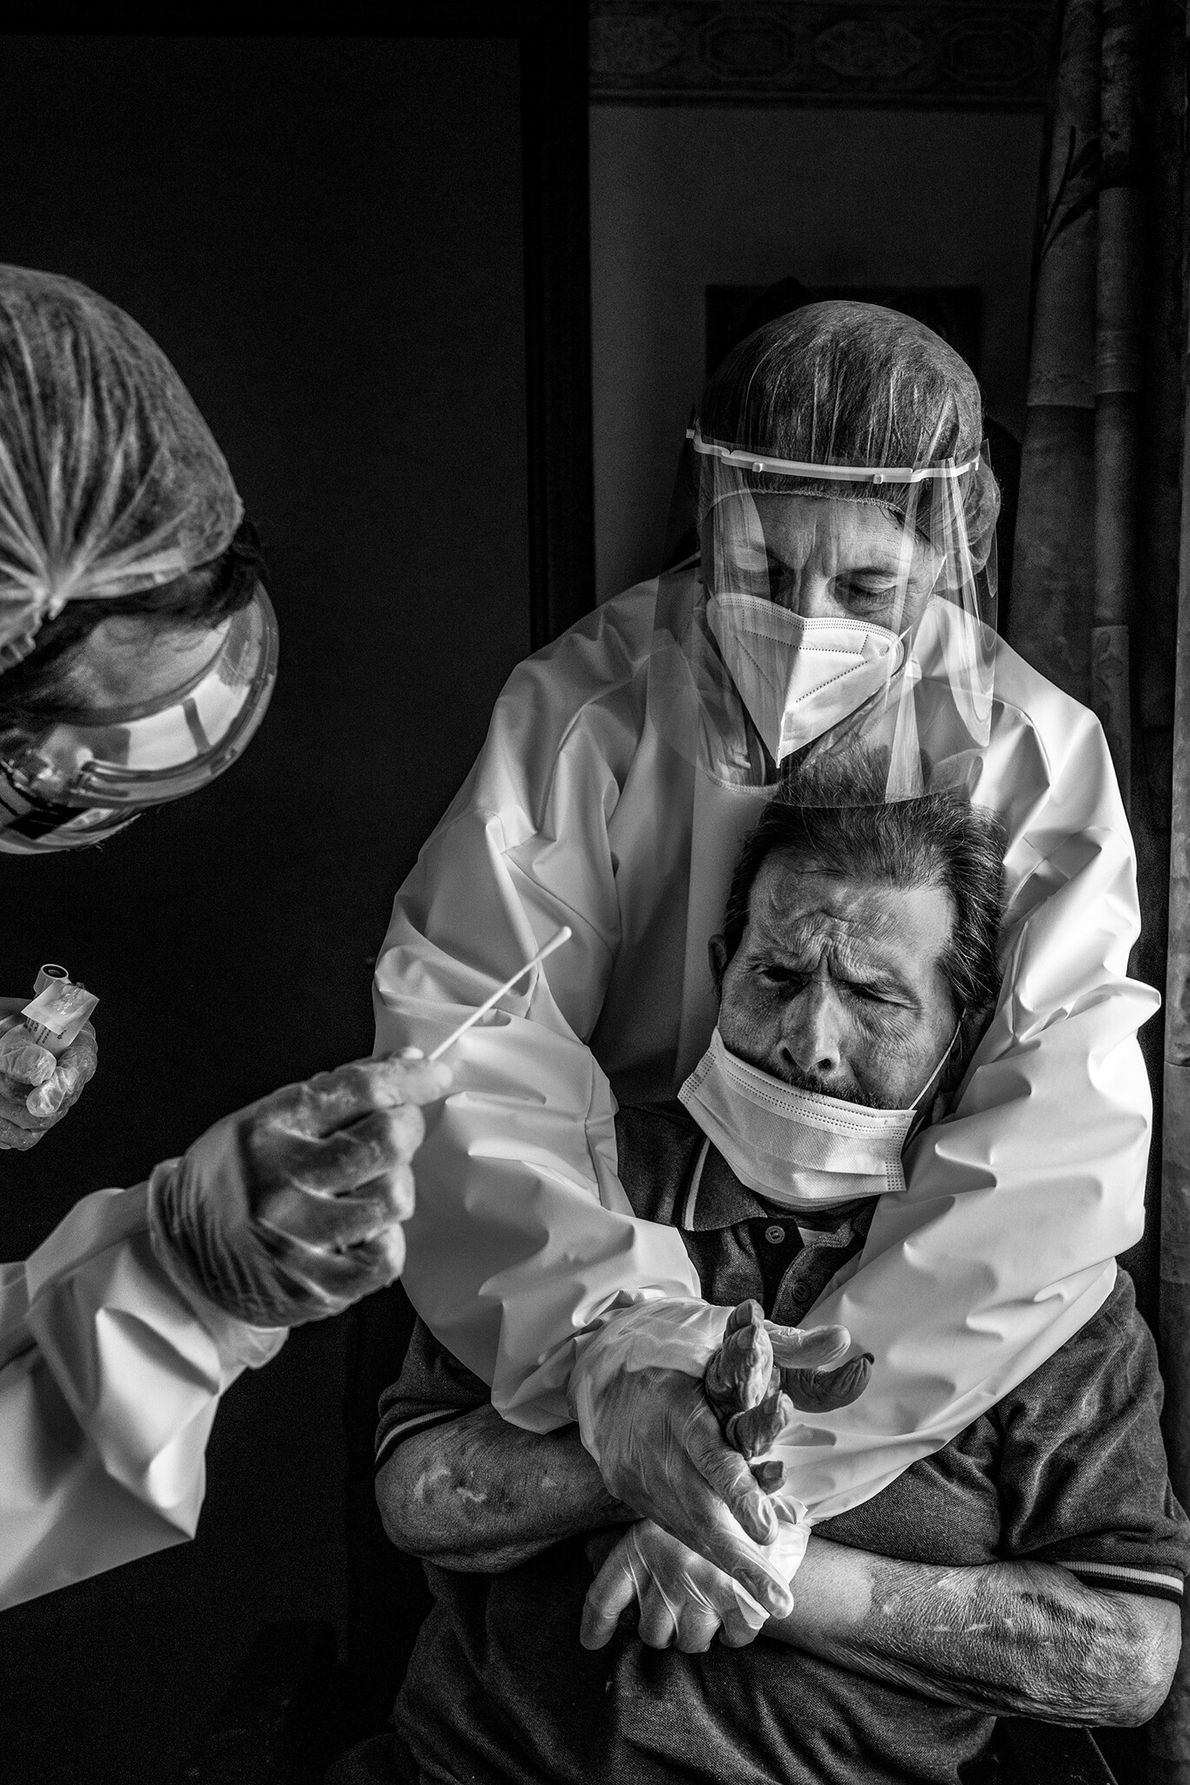 At a nursing home in La Louviere, Belgium, a nurse restrains and stabilizes a resident so ...